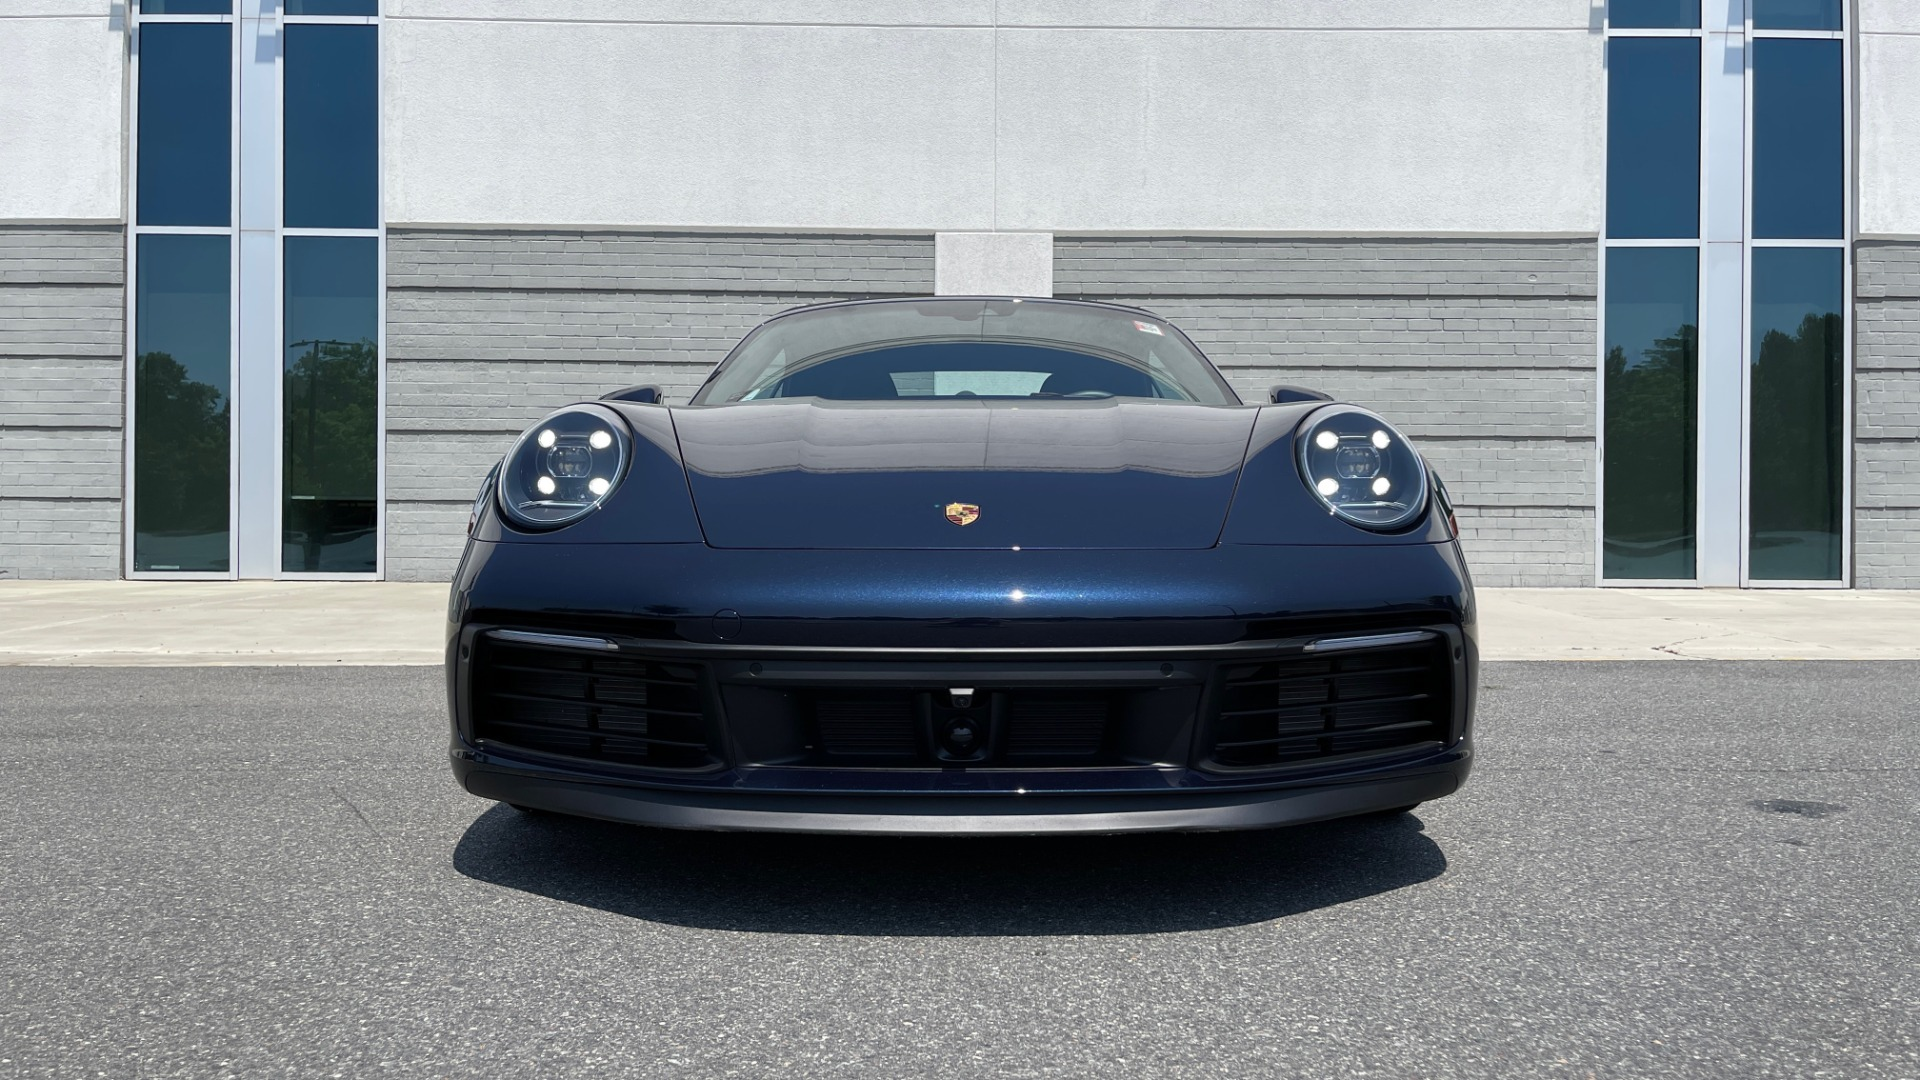 Used 2020 Porsche 911 CARRERA S CABRIOLET PREMIUM SPORT / LCA / ACC / BOSE / REARVIEW for sale $159,995 at Formula Imports in Charlotte NC 28227 10